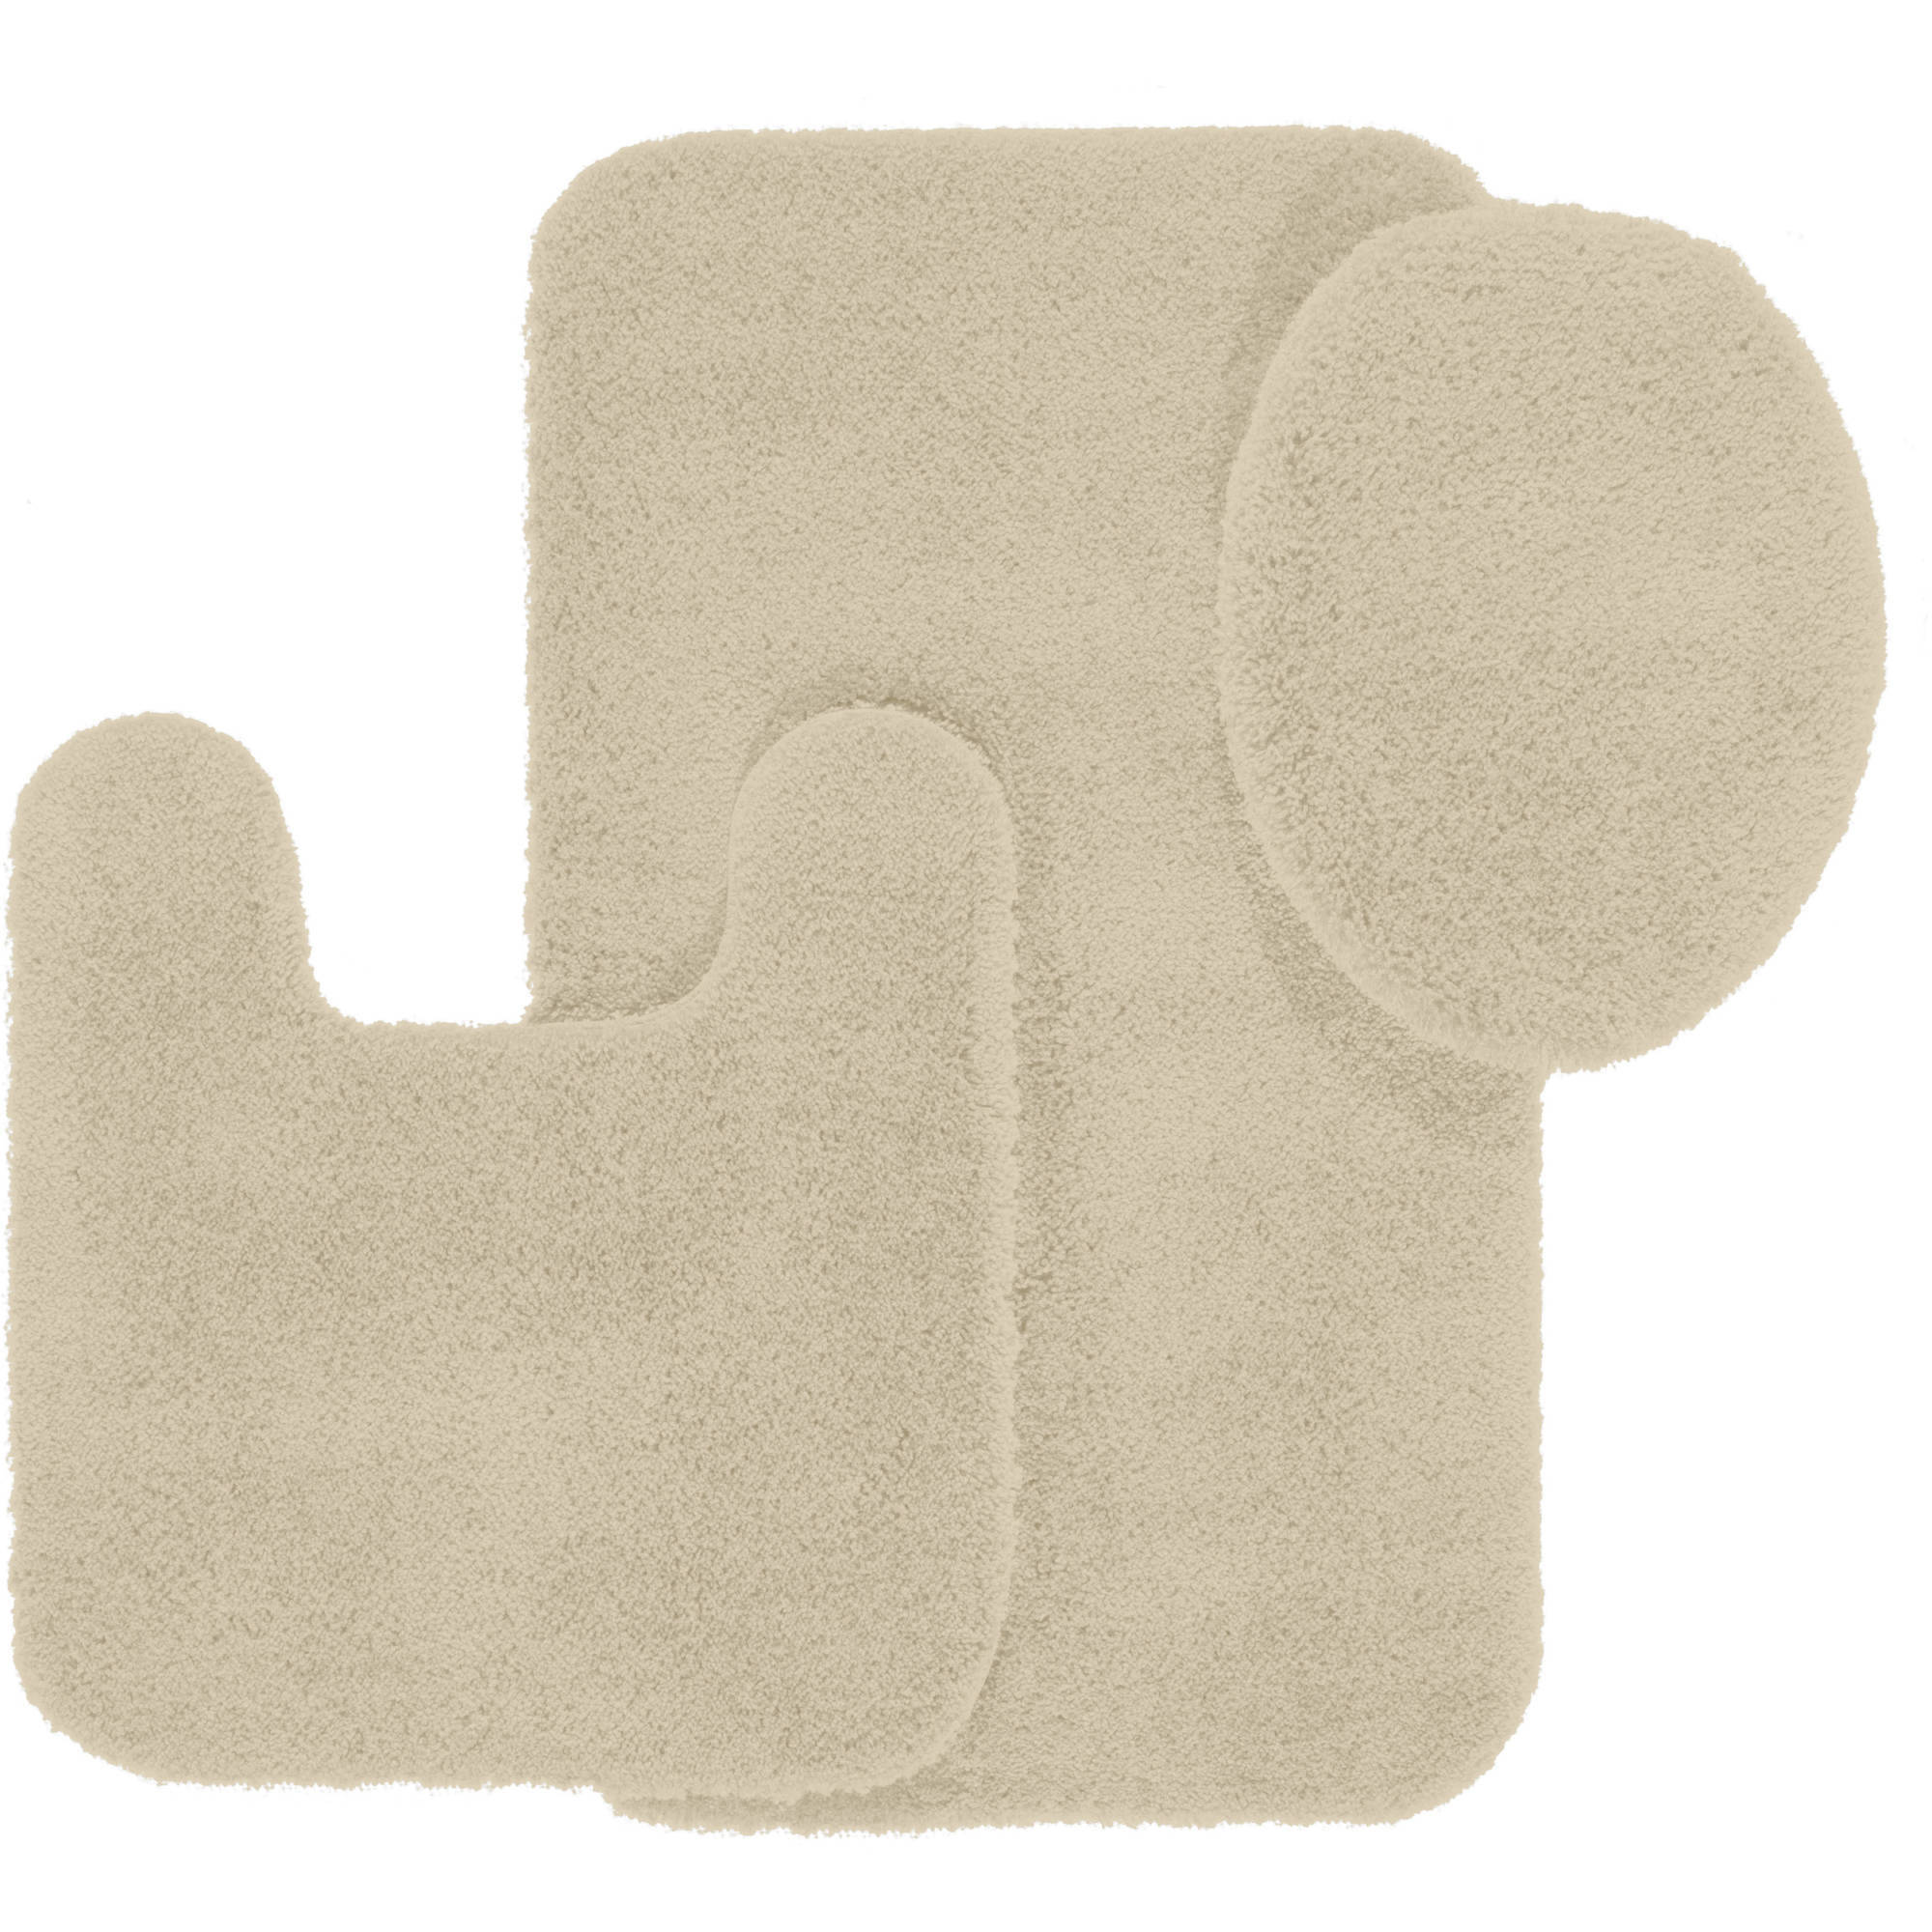 Better Homes And Gardens Extra Soft Bath Piece Set Walmartcom - Beige bath mat for bathroom decorating ideas